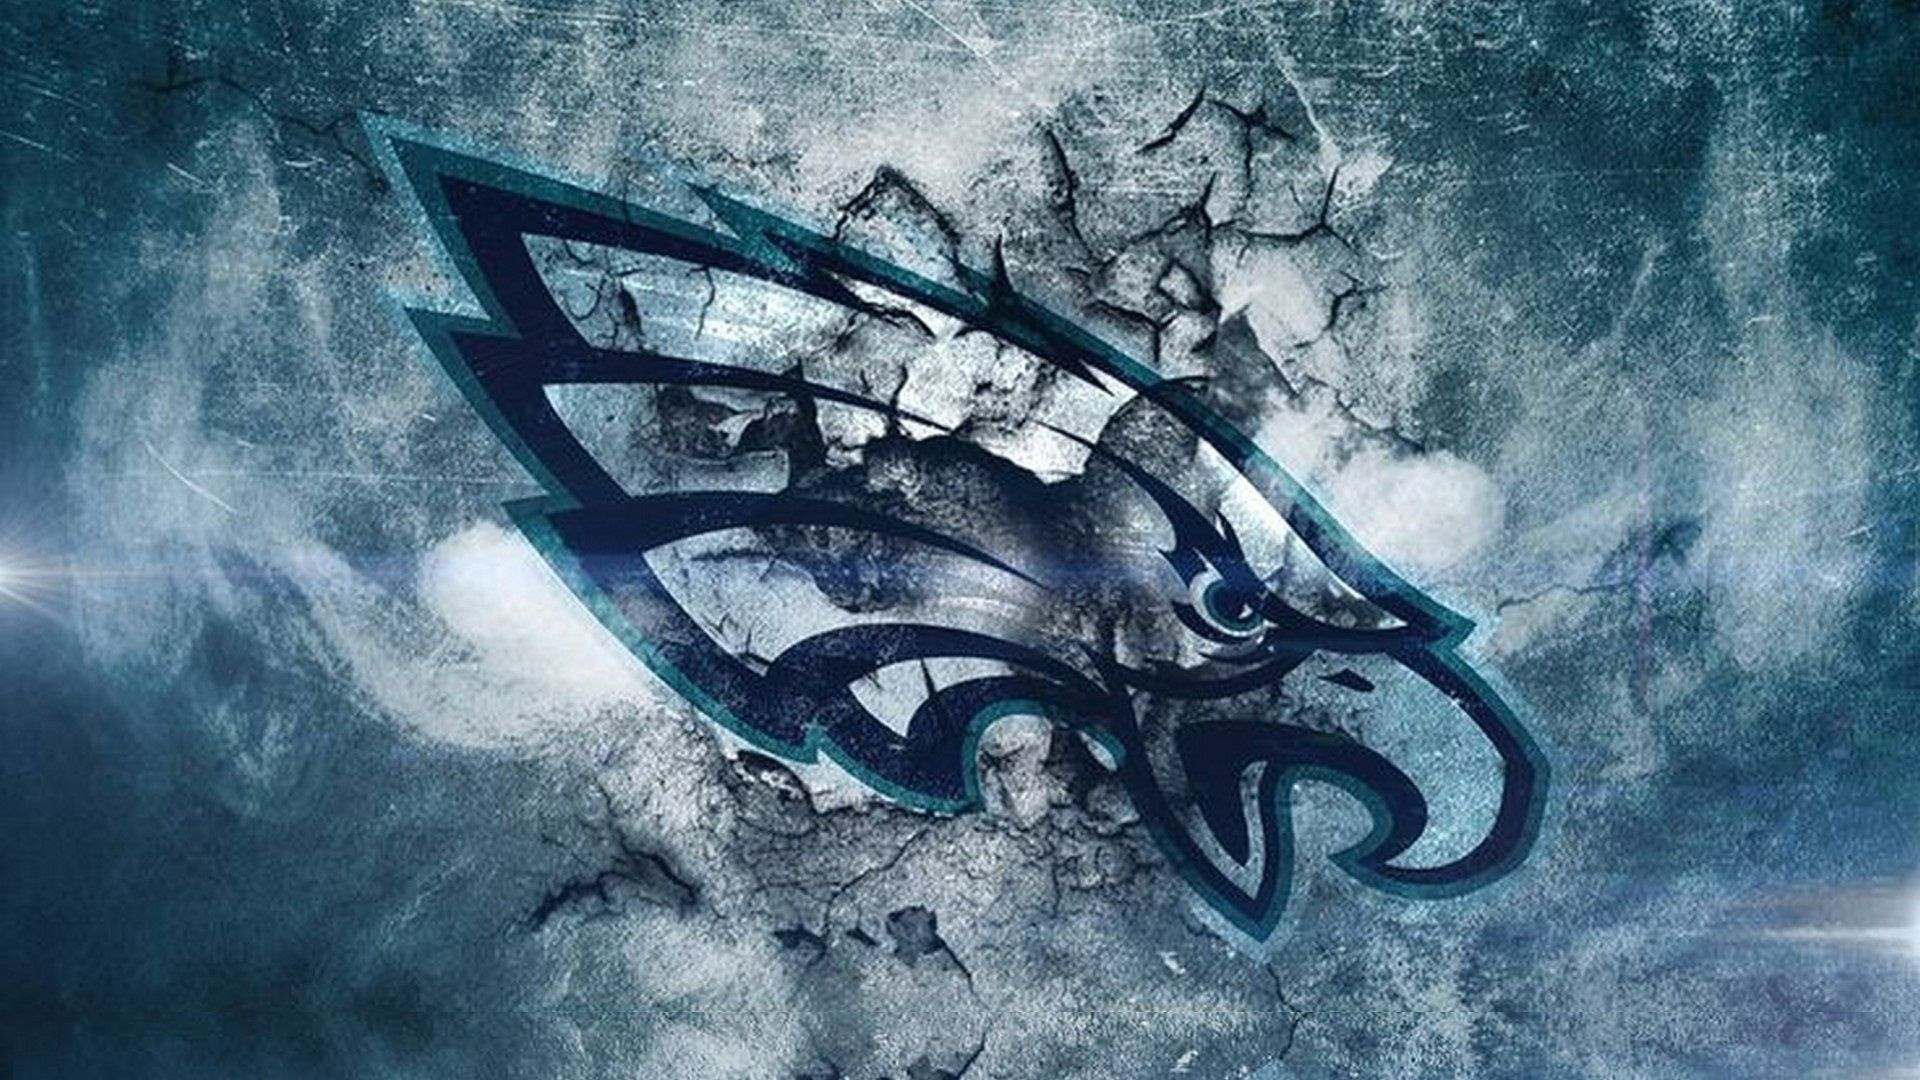 Wallpapers Hd Nfl Eagles 2020 Nfl Football Wallpapers Nfl Football Wallpaper Football Wallpaper Eagles